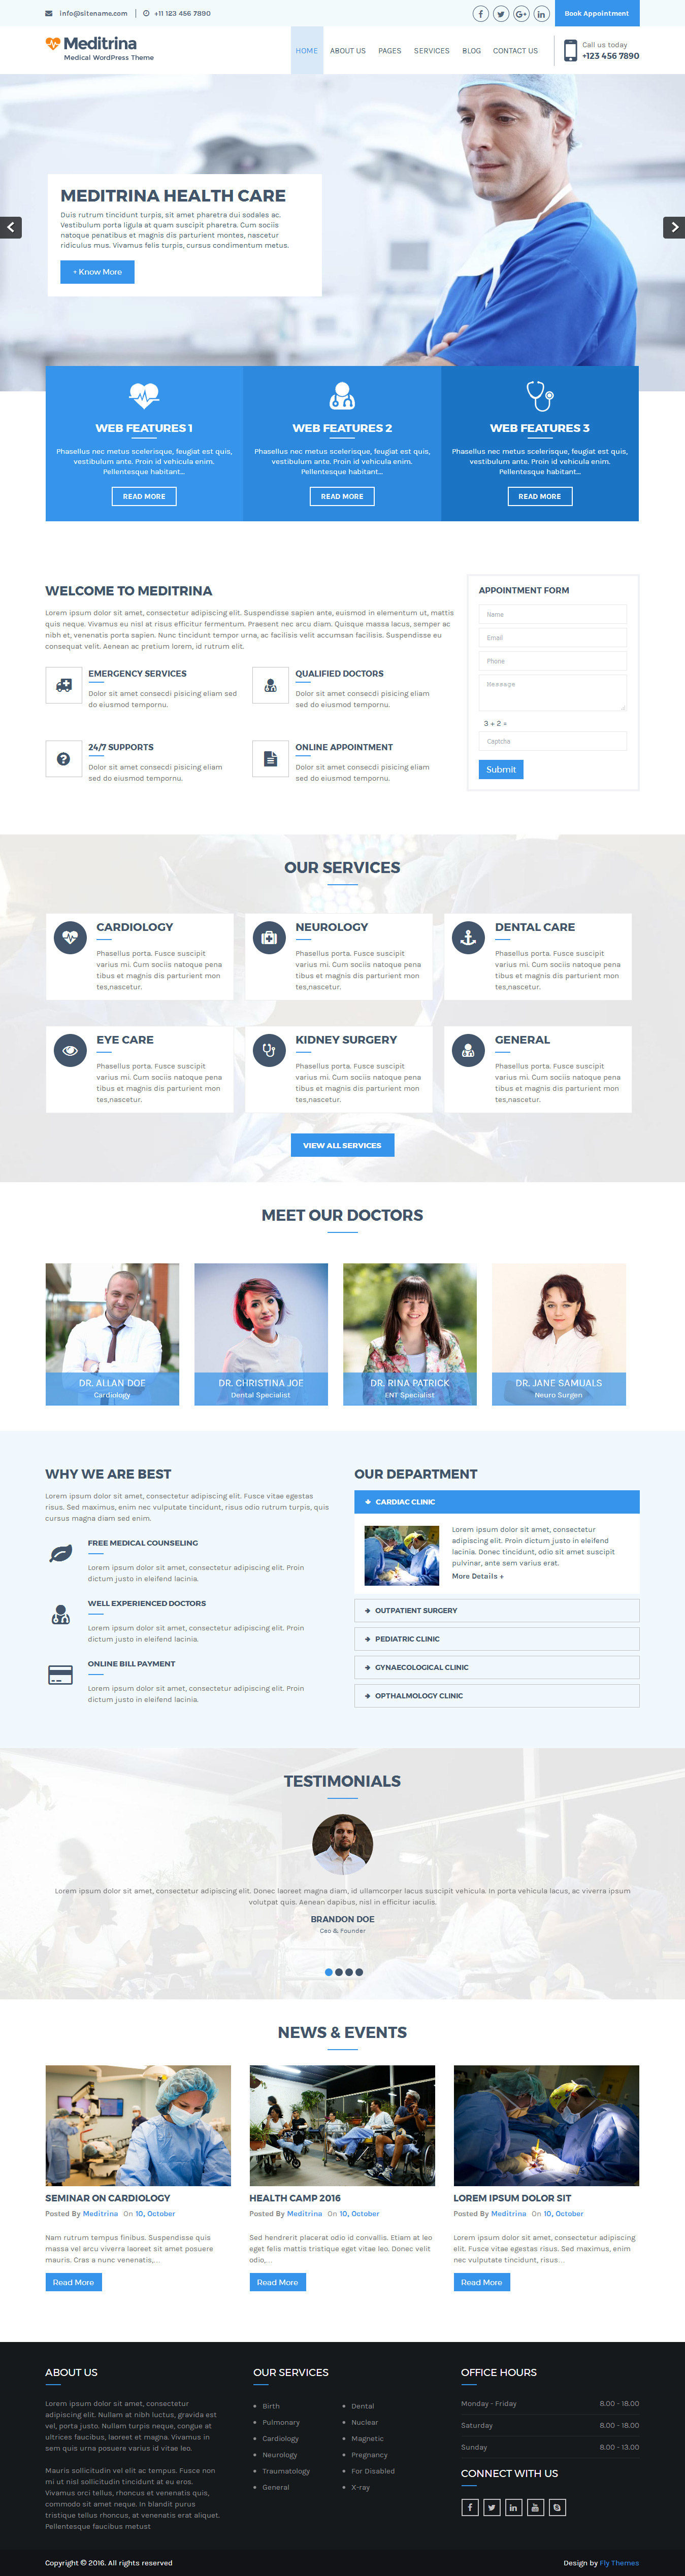 meditrina-wordpress-theme